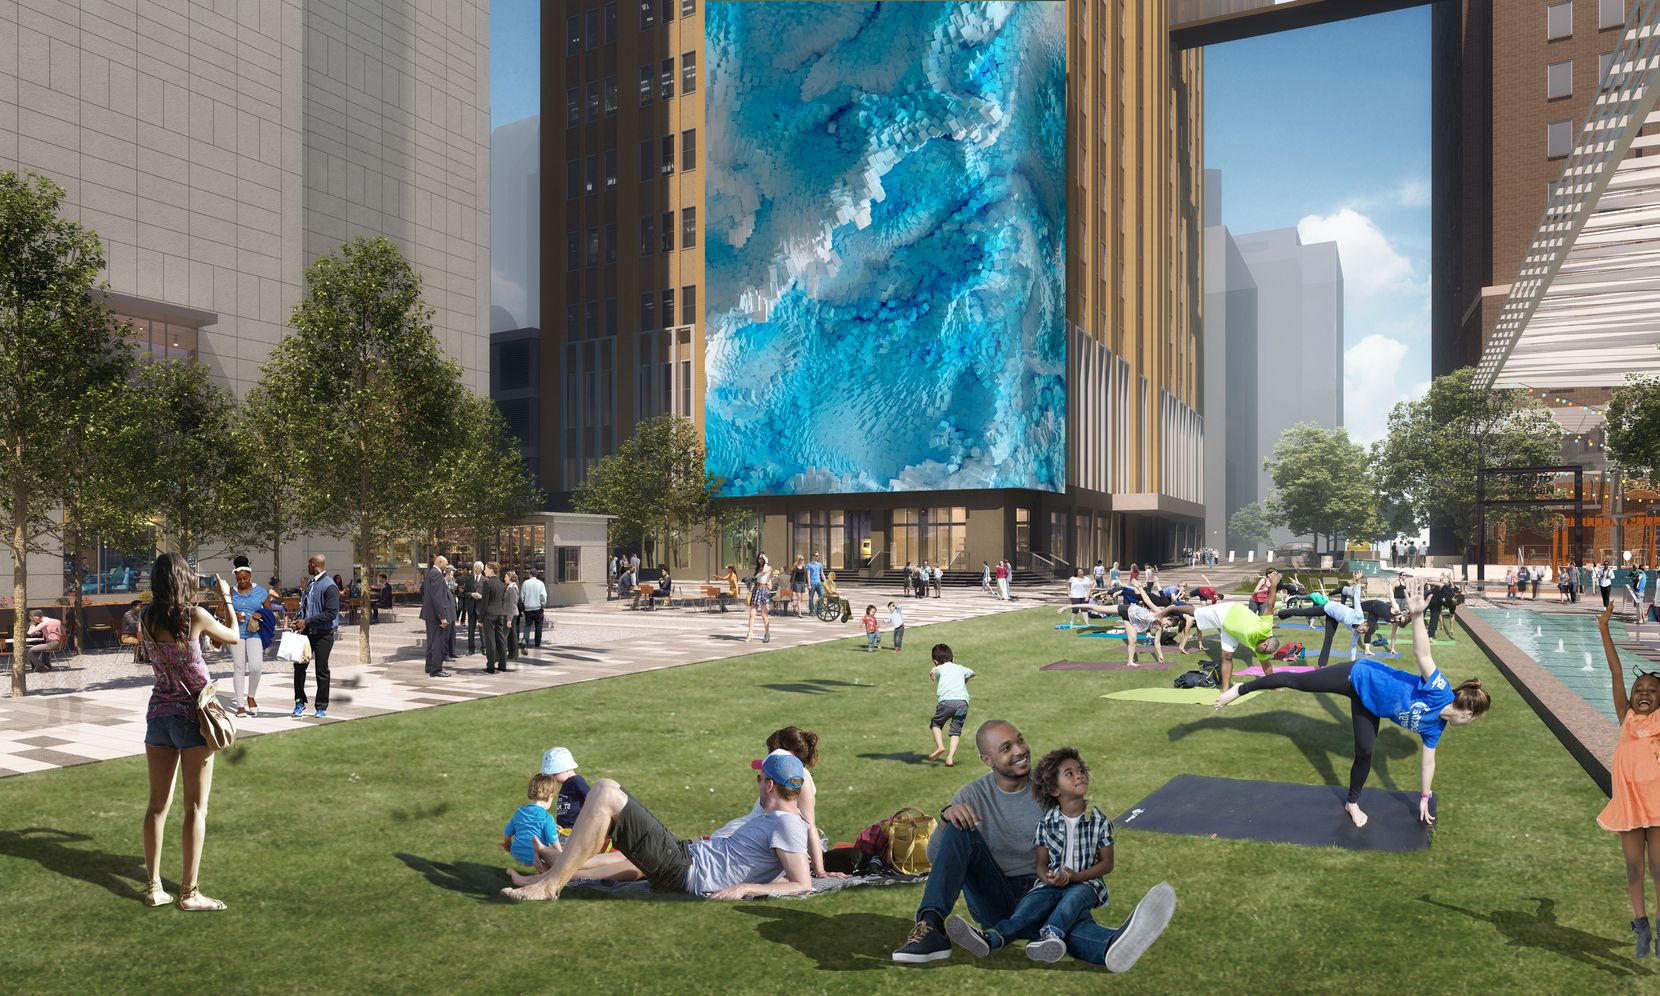 AT&T's Discovery District will include a 104-foot-tall media wall that wraps around the corner of a building.